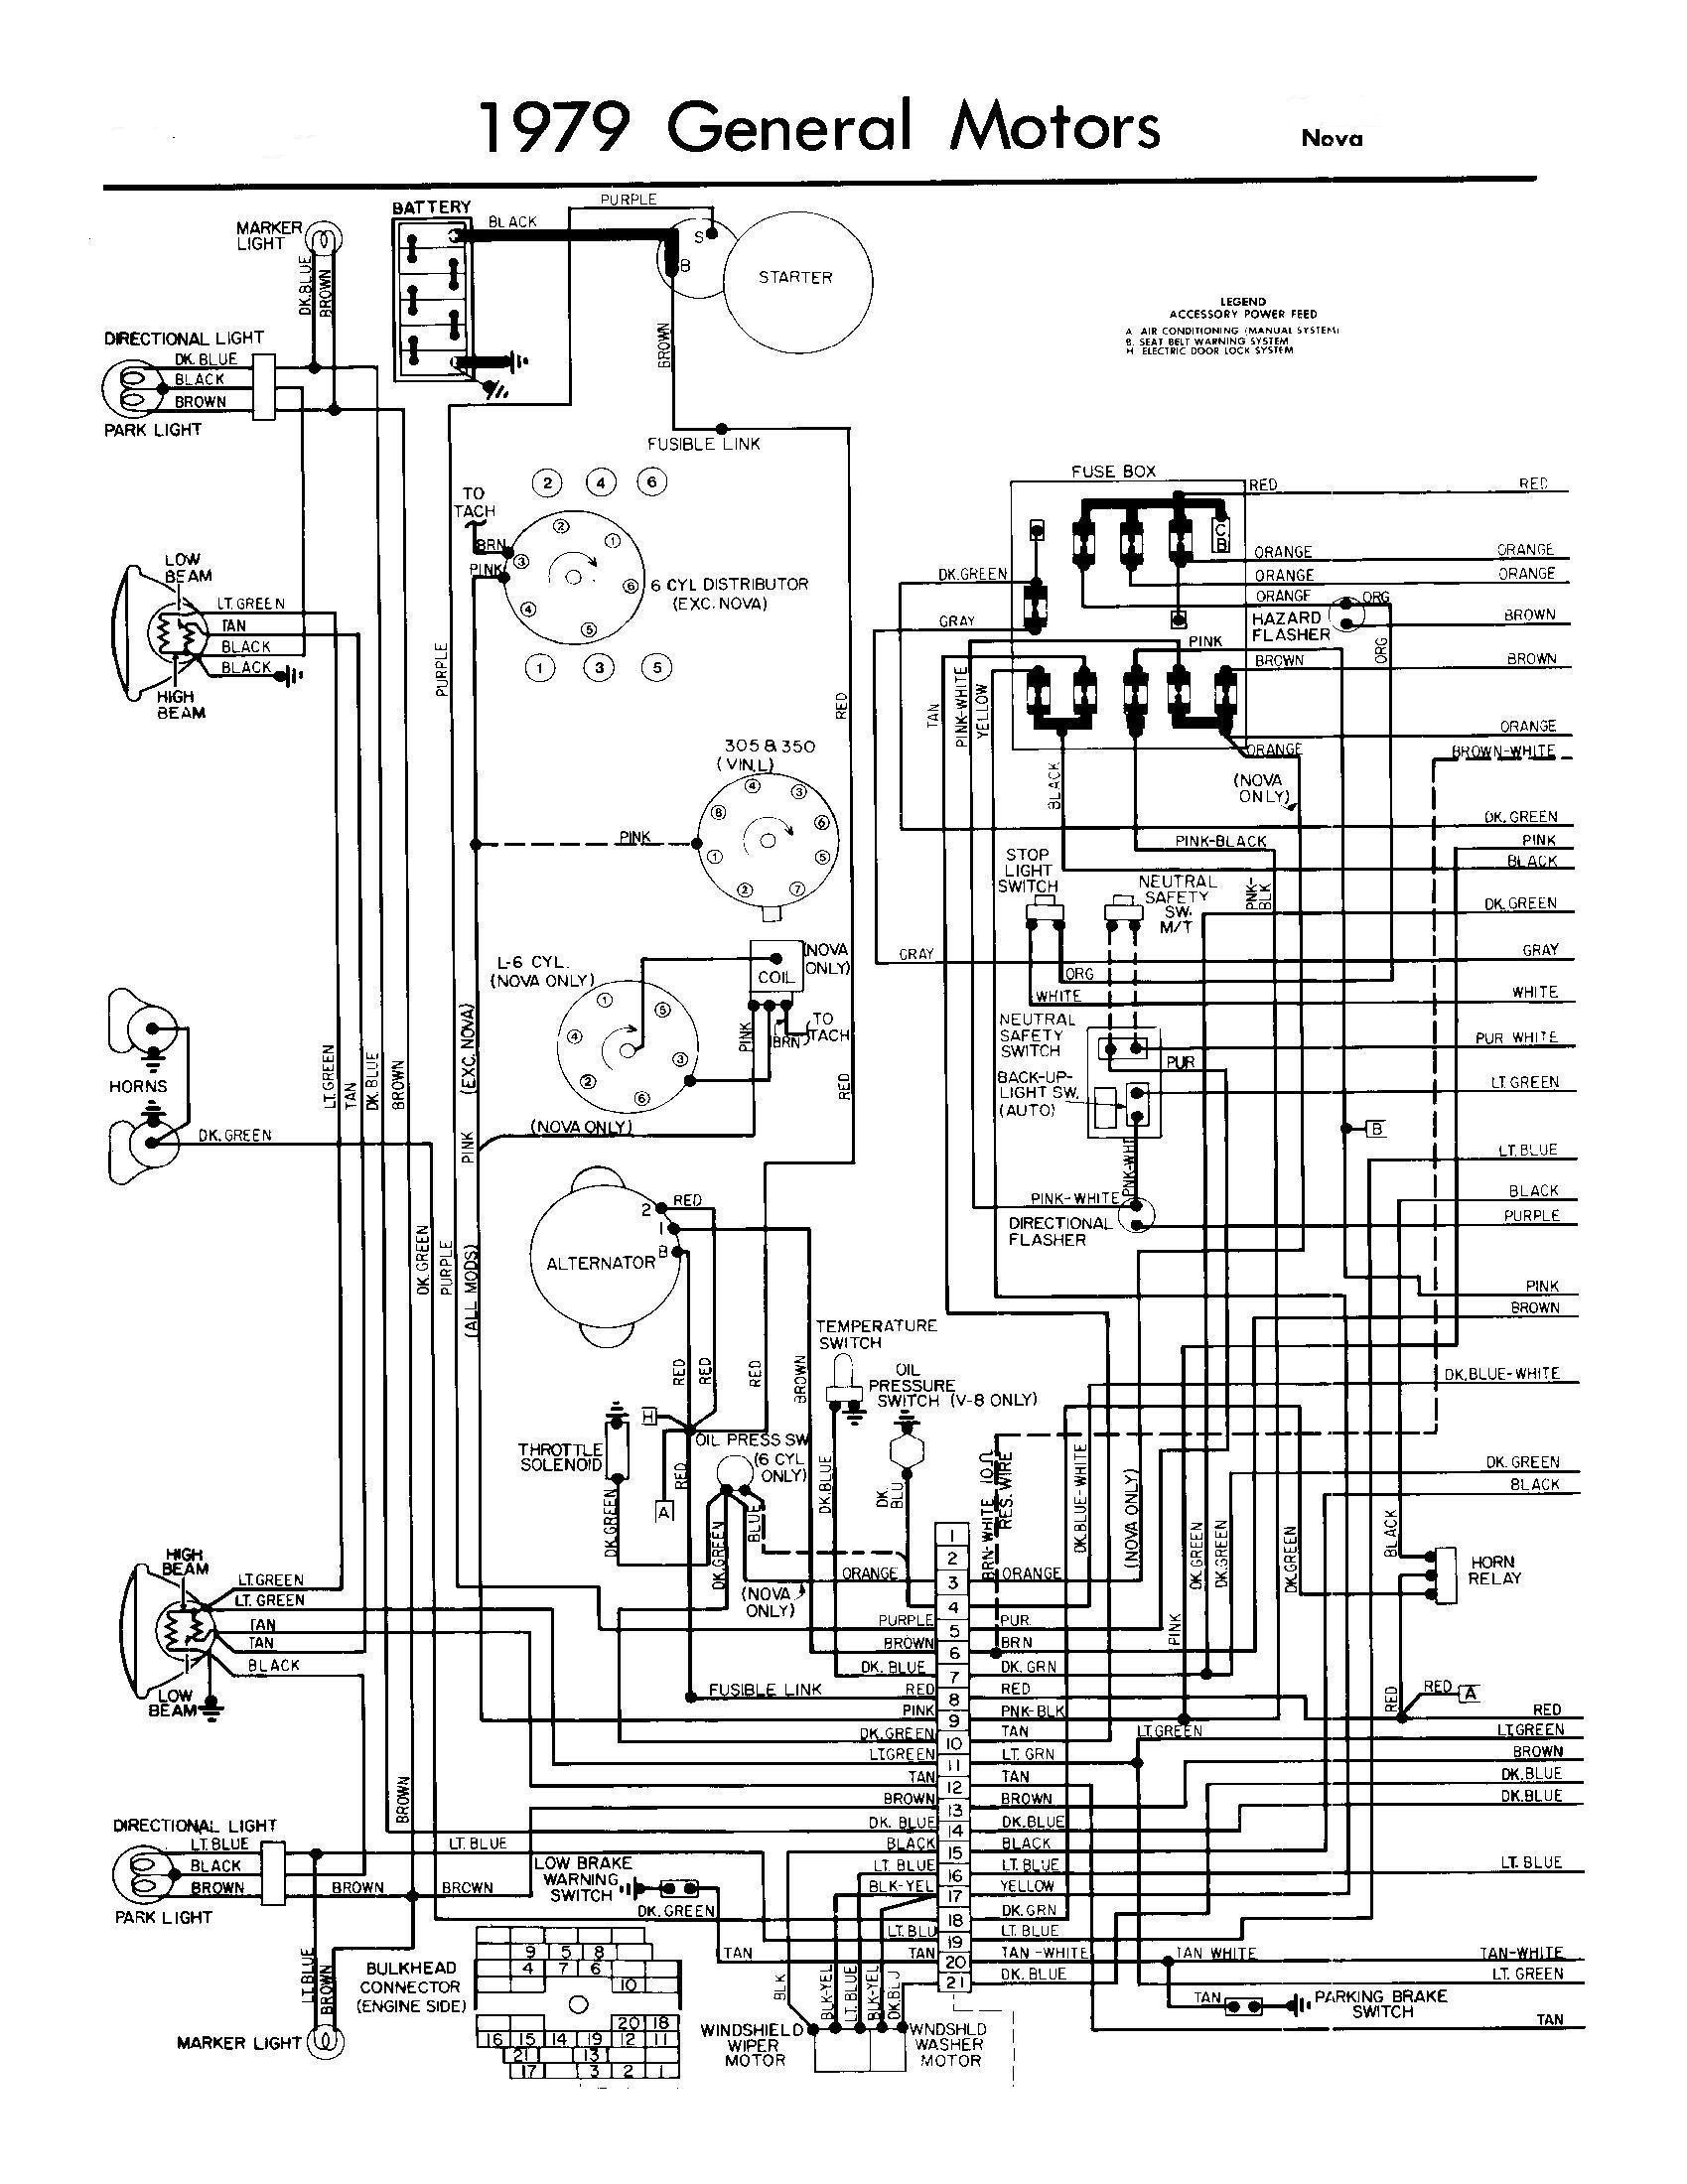 Wiring Diagram 1974 Chevy 350 Alternator Free Download - Get ... on 1984 corvette wiring schematic, 1967 corvette wiring schematic, 1968 corvette wiring schematic, 1980 corvette wiring schematic, 2001 corvette wiring schematic, 1982 corvette wiring schematic, 1979 corvette wiring schematic, 1985 corvette wiring schematic, 1987 corvette wiring schematic, 1981 corvette wiring schematic, 1963 corvette wiring schematic, 1961 corvette wiring schematic, 1966 corvette wiring schematic, 1973 corvette wiring schematic, 1969 corvette wiring schematic, 68 corvette wiring schematic, 1978 corvette wiring schematic, 1976 corvette wiring schematic, 1972 corvette wiring schematic, 1975 corvette wiring schematic,